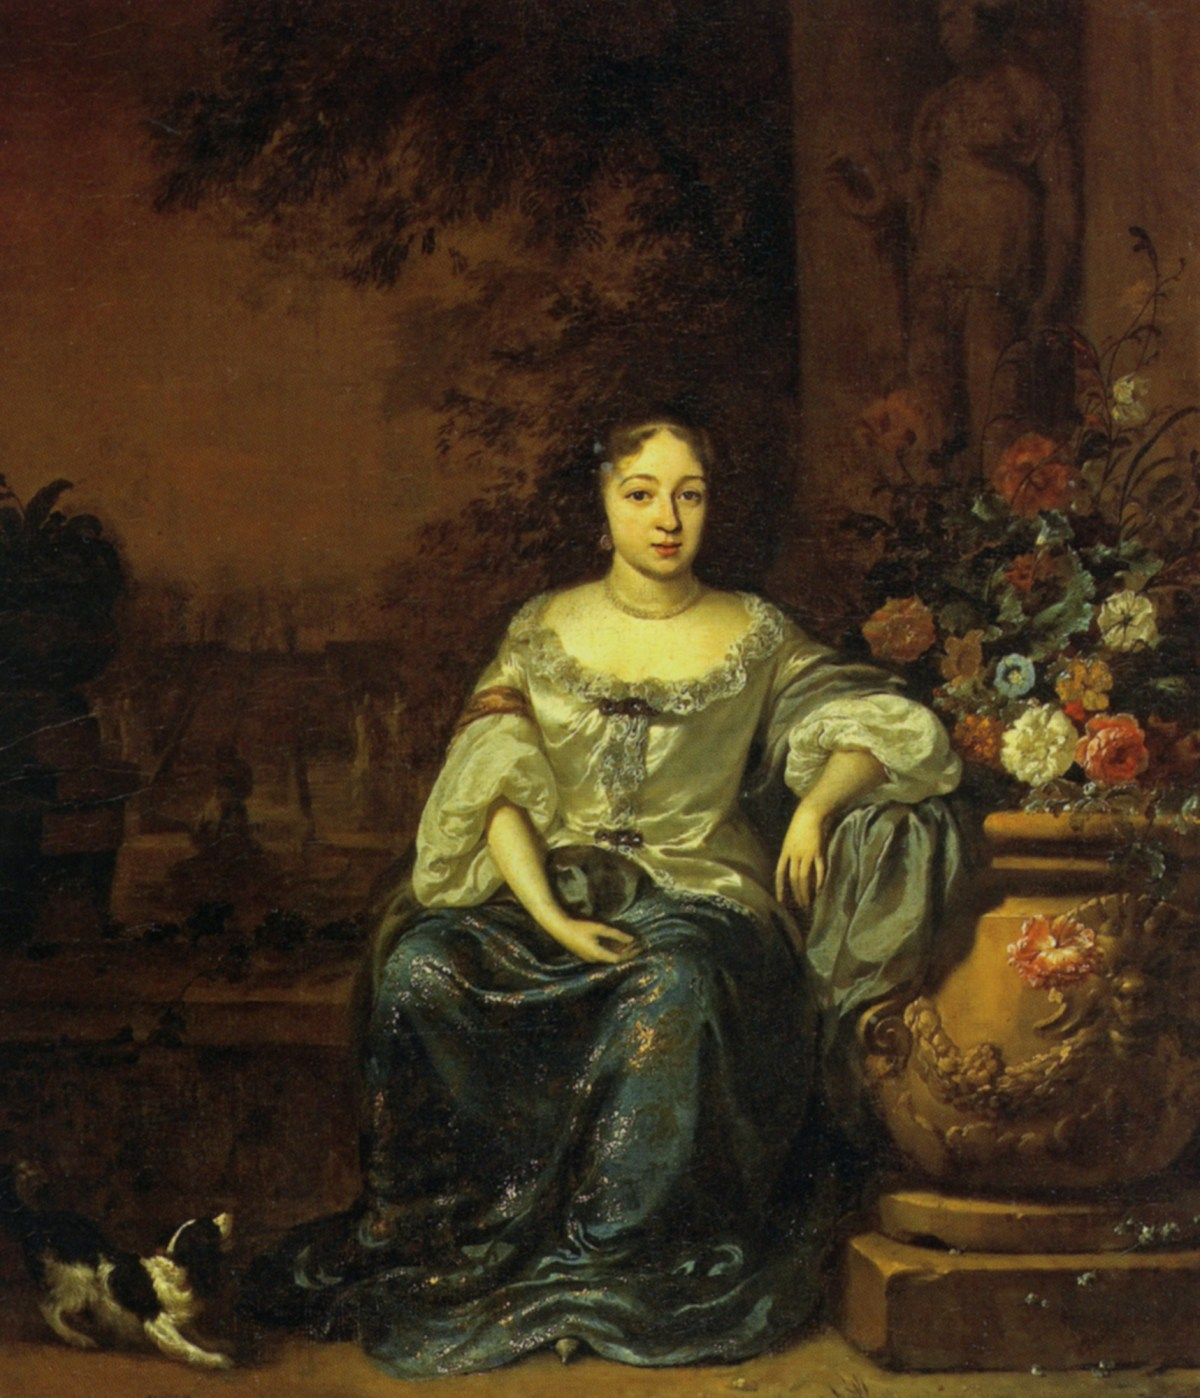 Portrait-of-a-Lady-Seated-in-a-Garden-with-her-Dog-by-Jan-Weenix